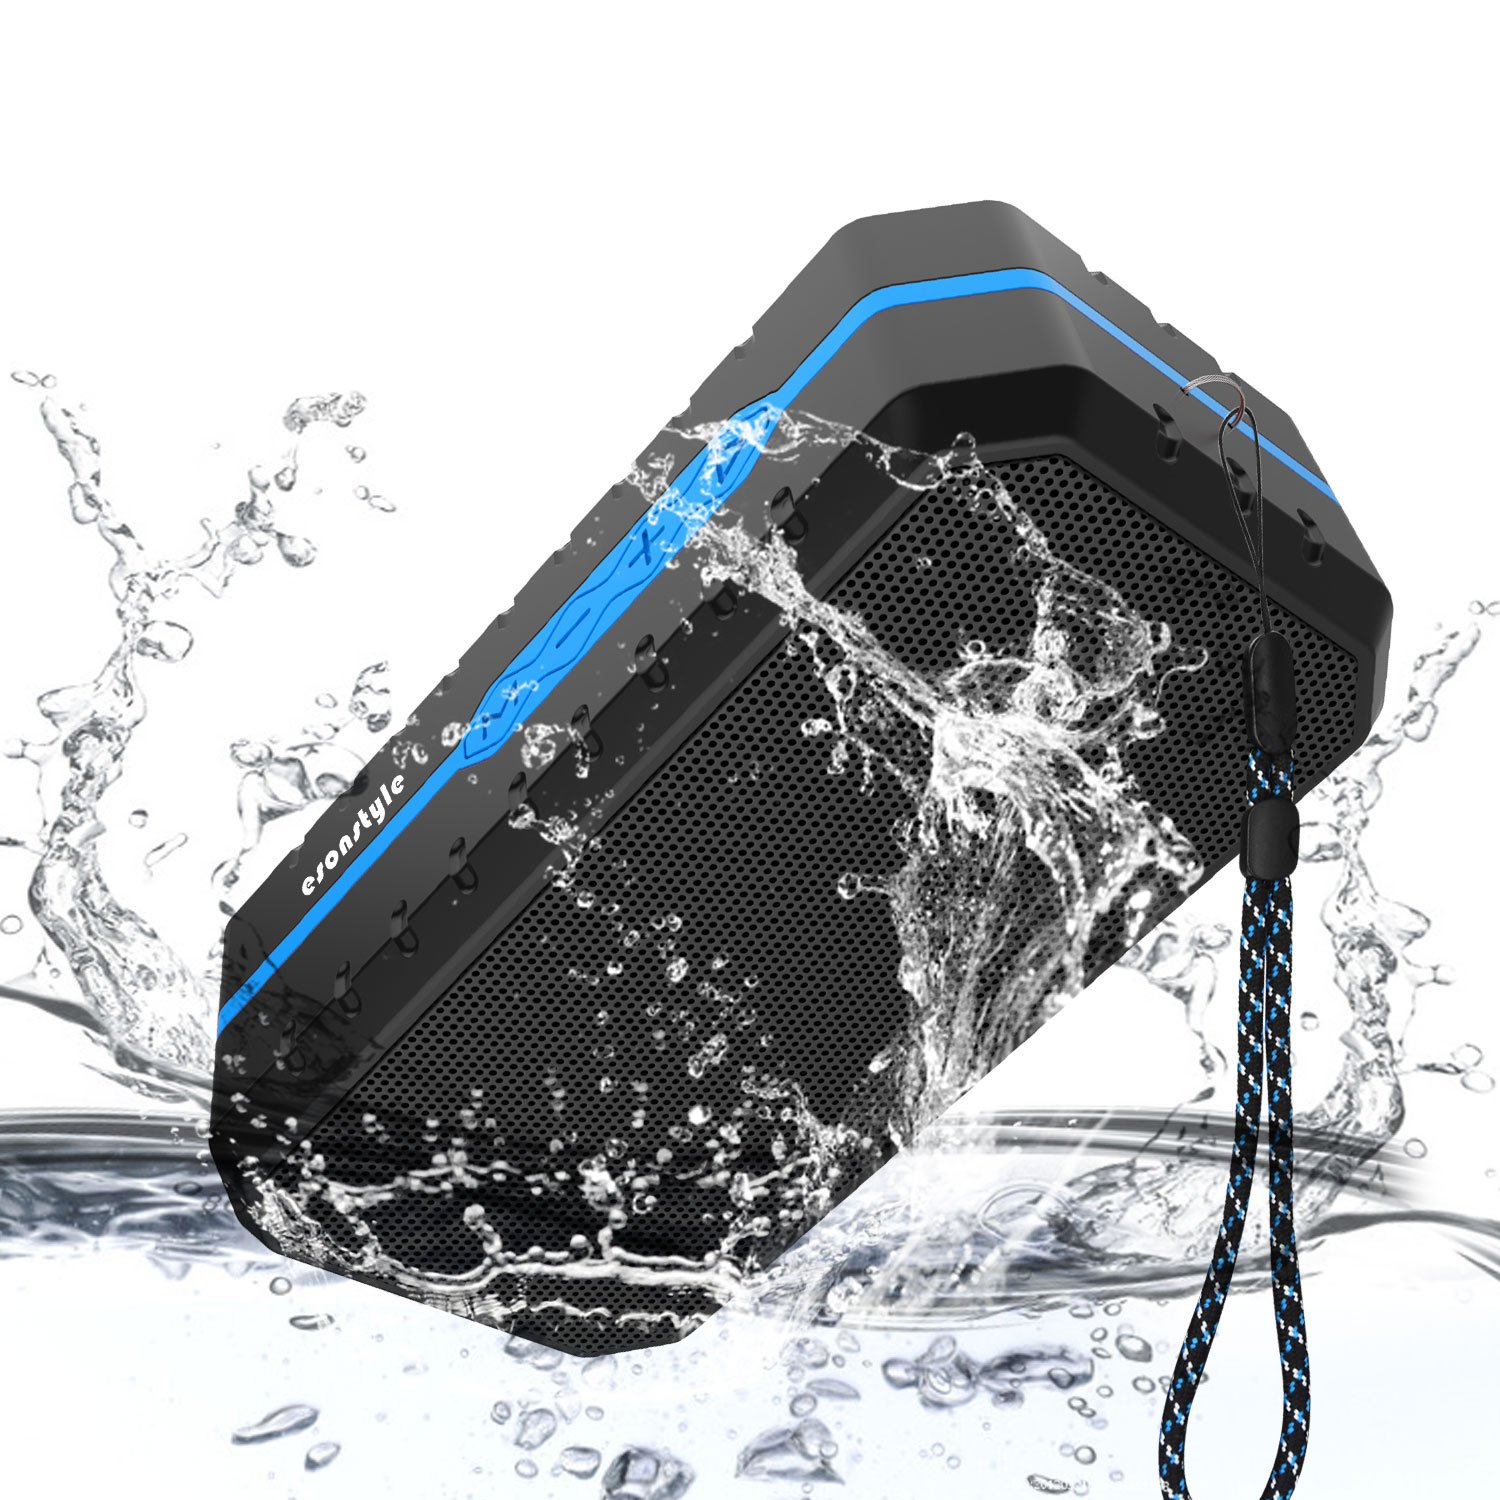 Portable Bluetooth Speaker,Esonstyle Waterproof Outdoor Wireless Speaker with 1800MAH Battery, Build-in Microphone,3.5mm Audio Input, Micro SD and USB Port for Smartphone,Tablet & More (blue)